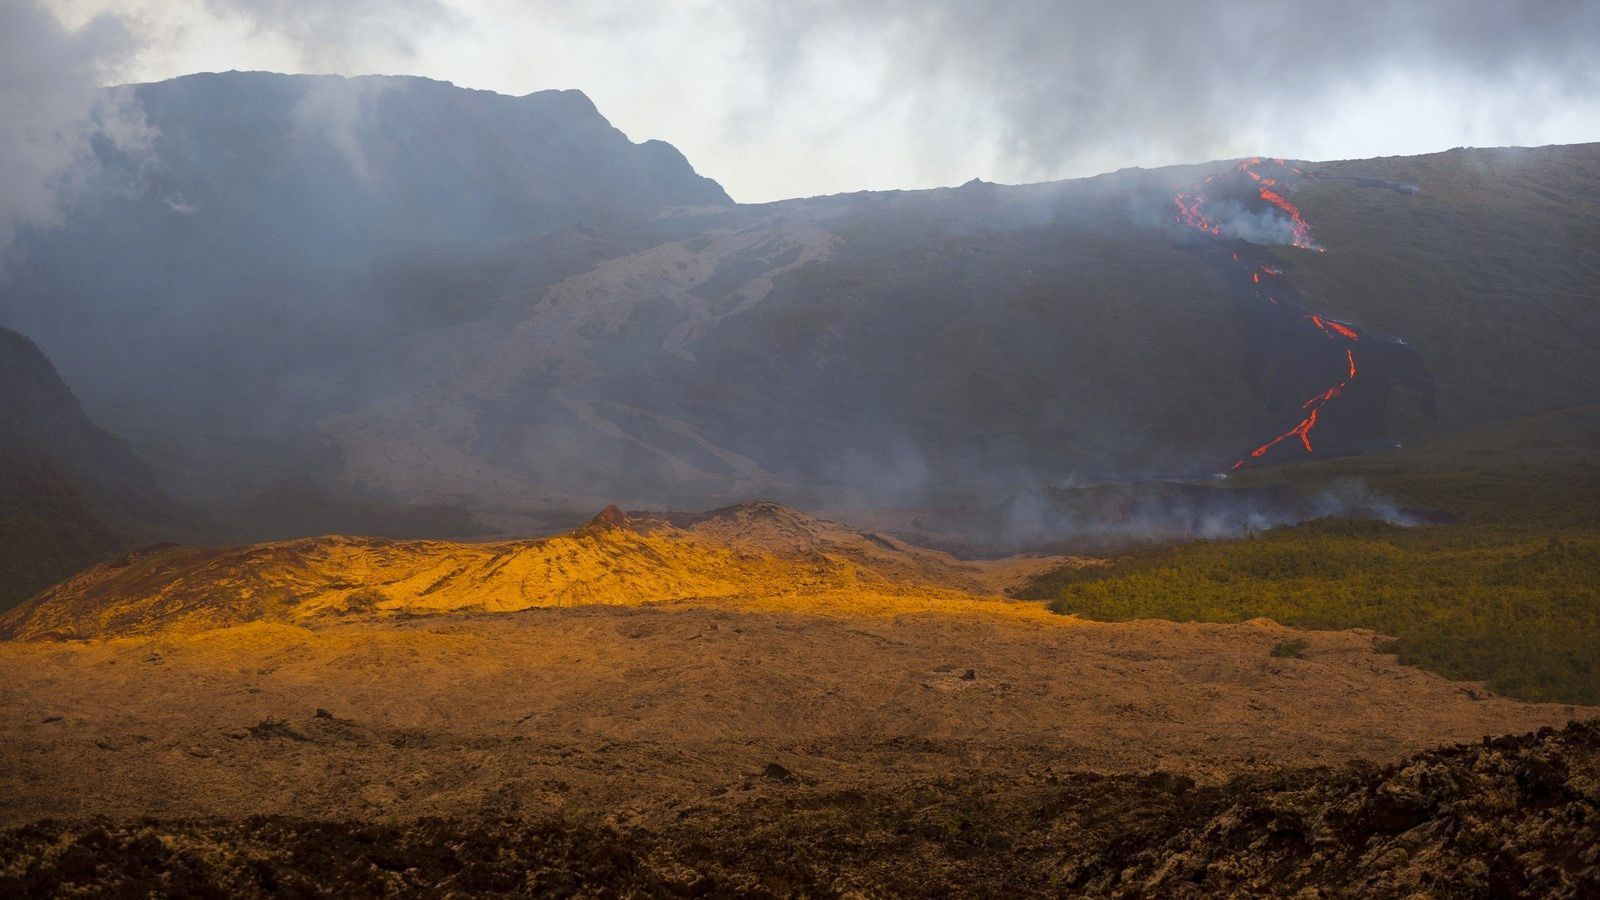 Piton de La Fournaise - the lava plays hide-and-seek with the mist - - photo © Thierry Sluys 13.08.2019